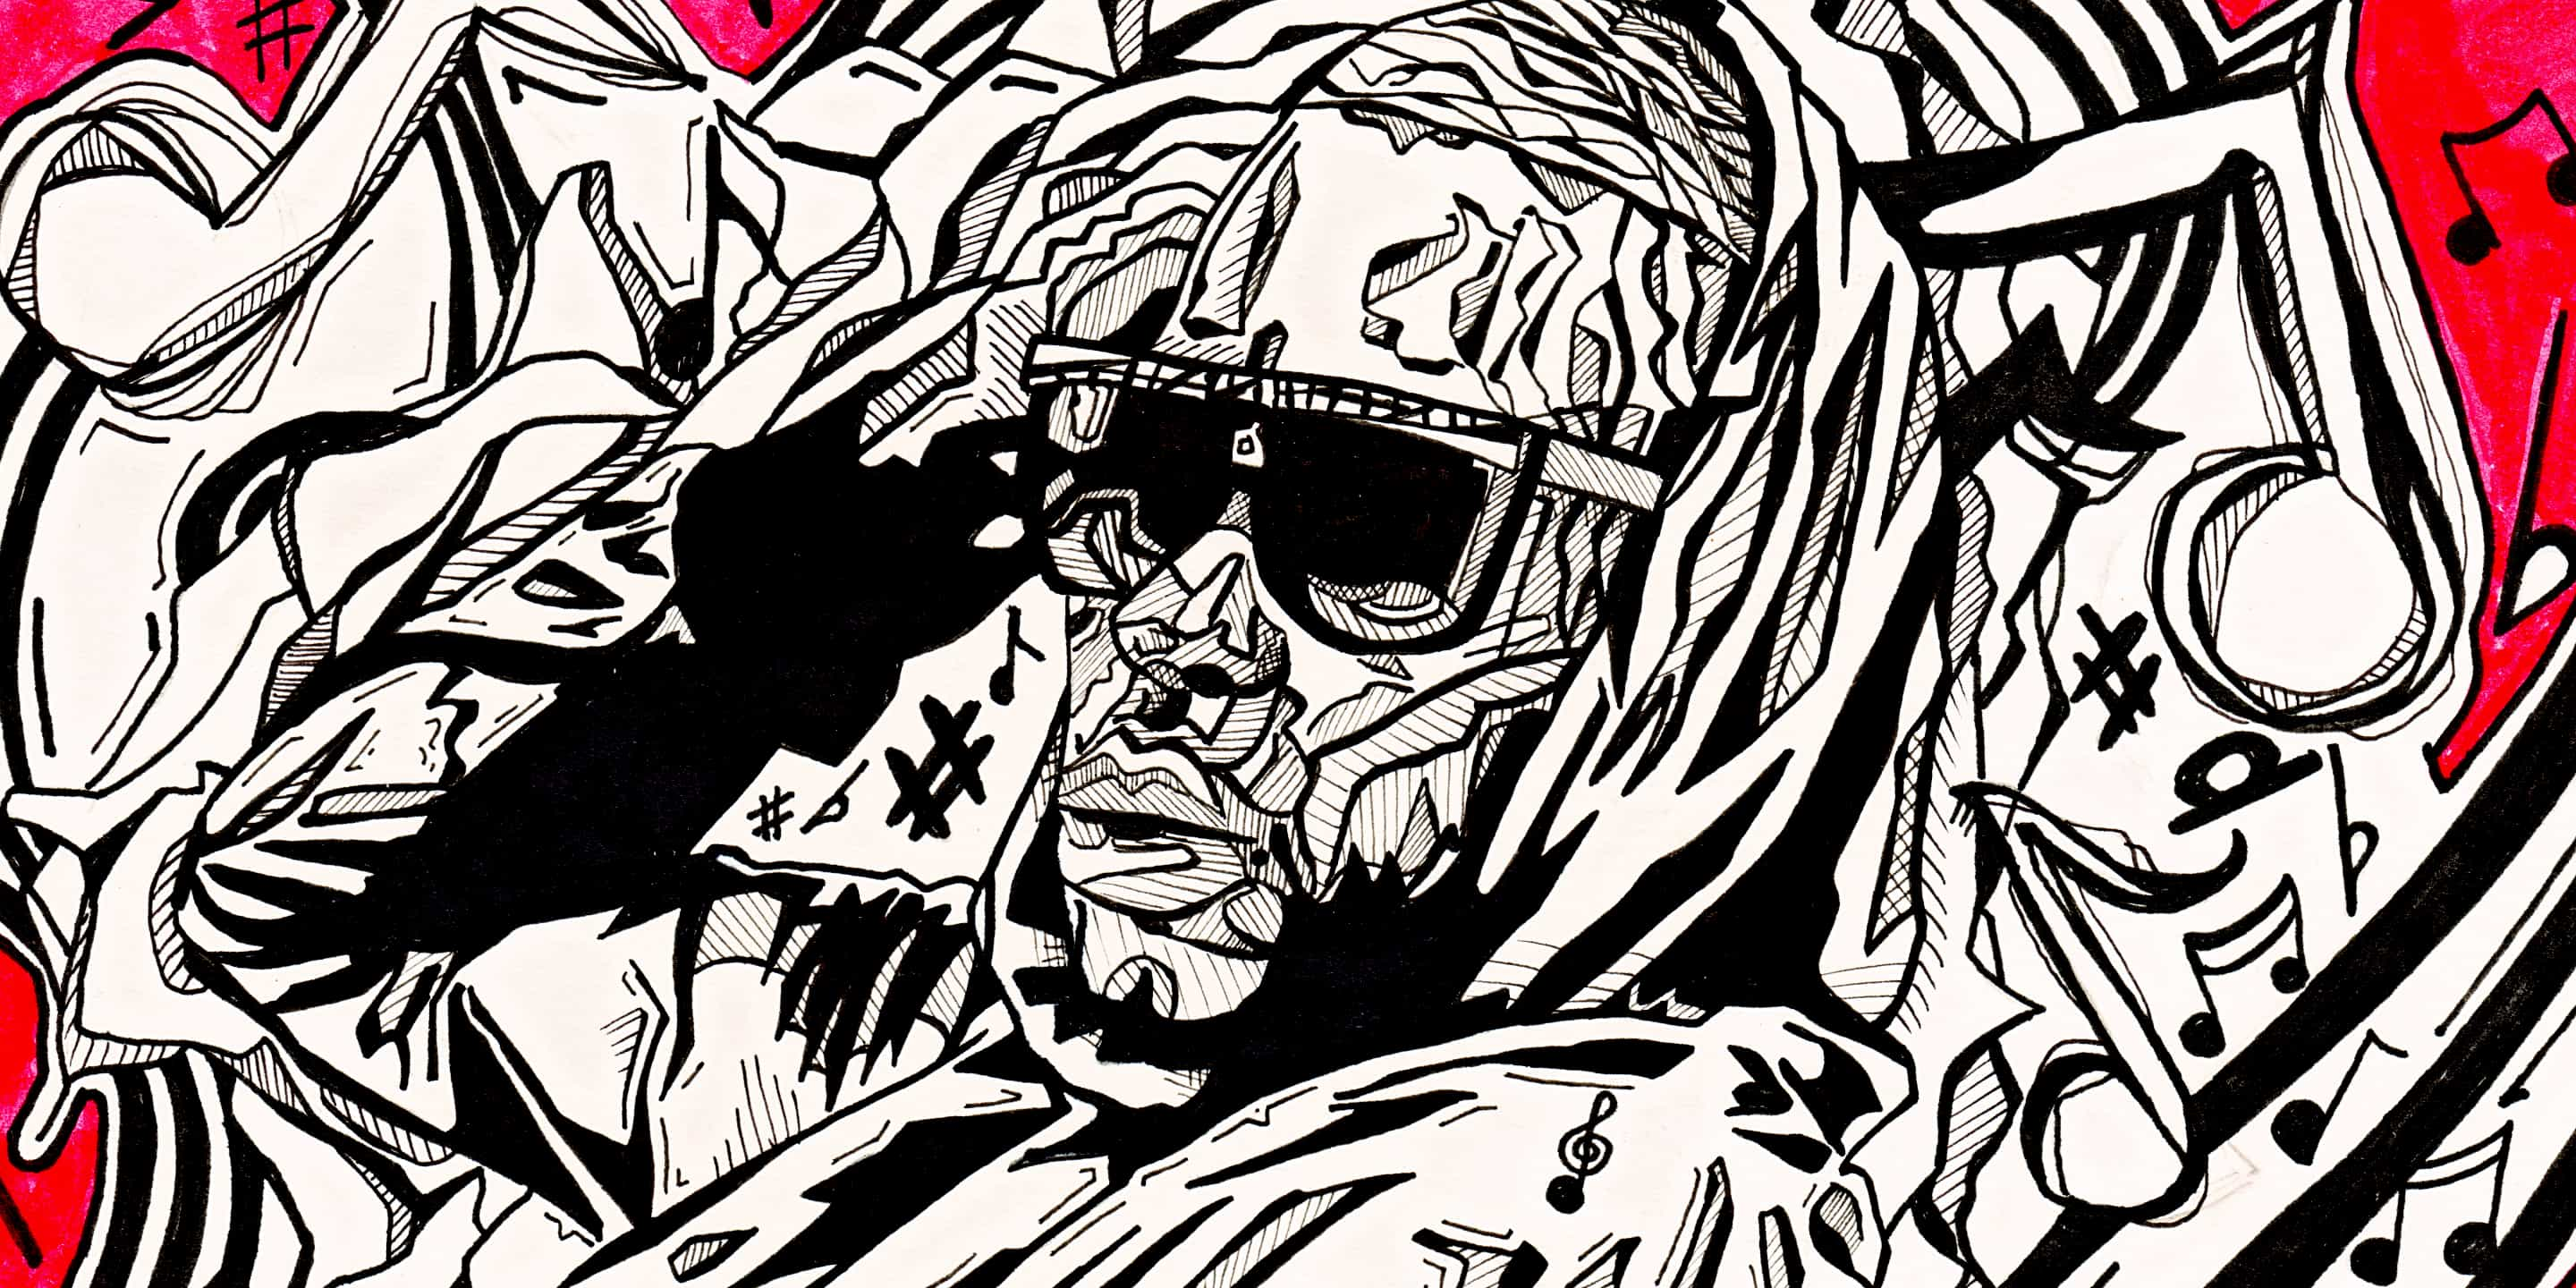 Hand drawn artwork that was not used for album artwork for the musician Refixx Jones, drawn by PixelsPencil in May 2011